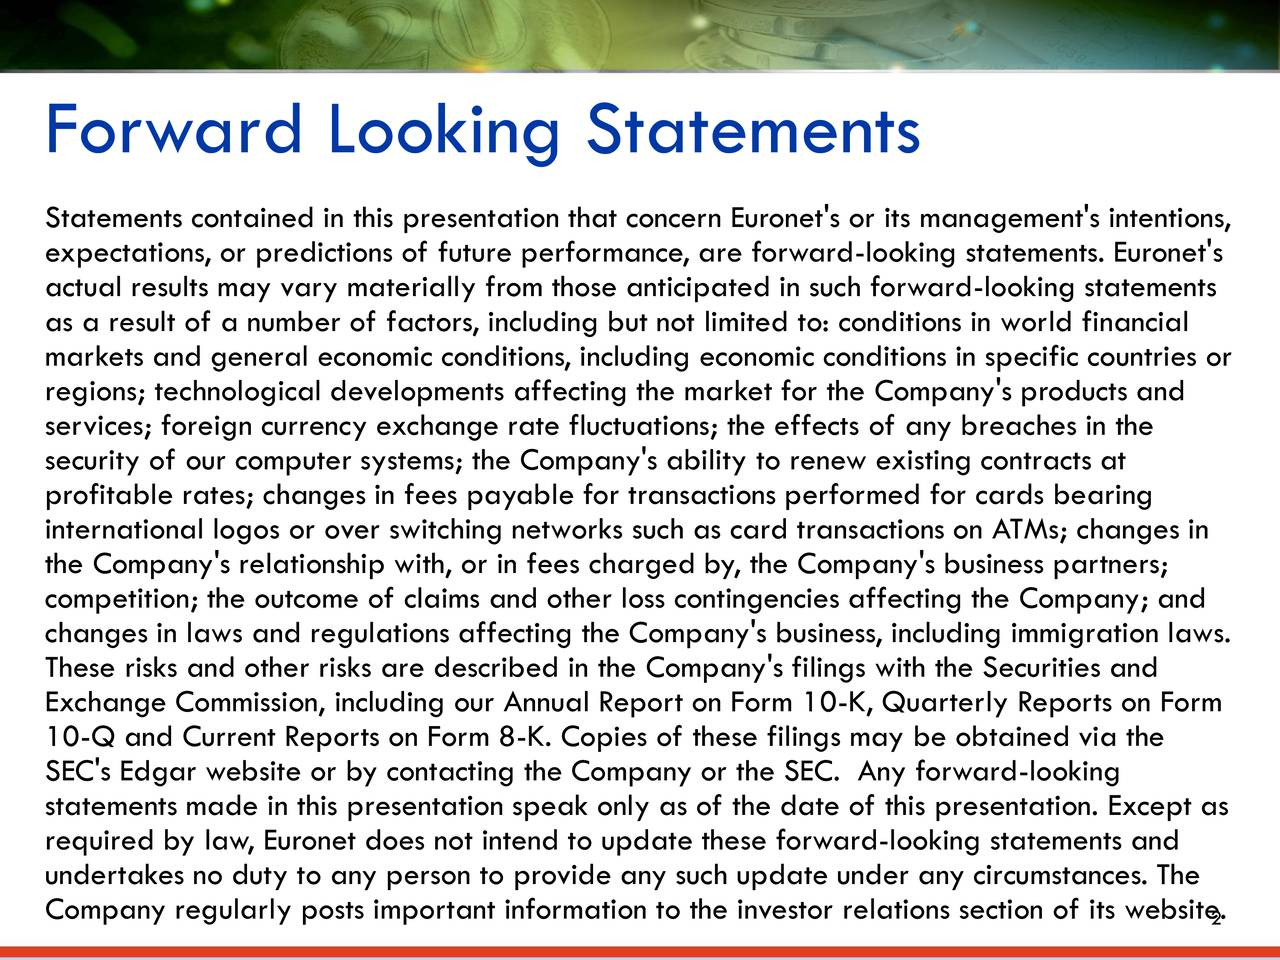 Statements contained in this presentation that concern Euronet's or its management's intentions, expectations, or predictions of future performance, are forward-looking statements. Euronet's actual results may vary materially from those anticipated in such forward-looking statements as a result of a number of factors, including but not limited to: conditions in world financial markets and general economic conditions, including economic conditions in specific countries or regions; technological developments affecting the market for the Company's products and services; foreign currency exchange rate fluctuations; the effects of any breaches in the security of our computer systems; the Company's ability to renew existing contracts at profitable rates; changes in fees payable for transactions performed for cards bearing international logos or over switching networks such as card transactions on ATMs; changes in the Company's relationship with, or in fees charged by, the Company's business partners; competition; the outcome of claims and other loss contingencies affecting the Company; and changes in laws and regulations affecting the Company's business, including immigration laws. These risks and other risks are described in the Company's filings with the Securities and Exchange Commission, including our Annual Report on Form 10-K, Quarterly Reports on Form 10-Q and Current Reports on Form 8-K. Copies of these filings may be obtained via the SEC's Edgar website or by contacting the Company or the SEC. Any forward-looking statements made in this presentation speak only as of the date of this presentation. Except as required by law, Euronet does not intend to update these forward-looking statements and undertakes no duty to any person to provide any such update under any circumstances. The Company regularly posts important information to the investor relations section of its we2site.